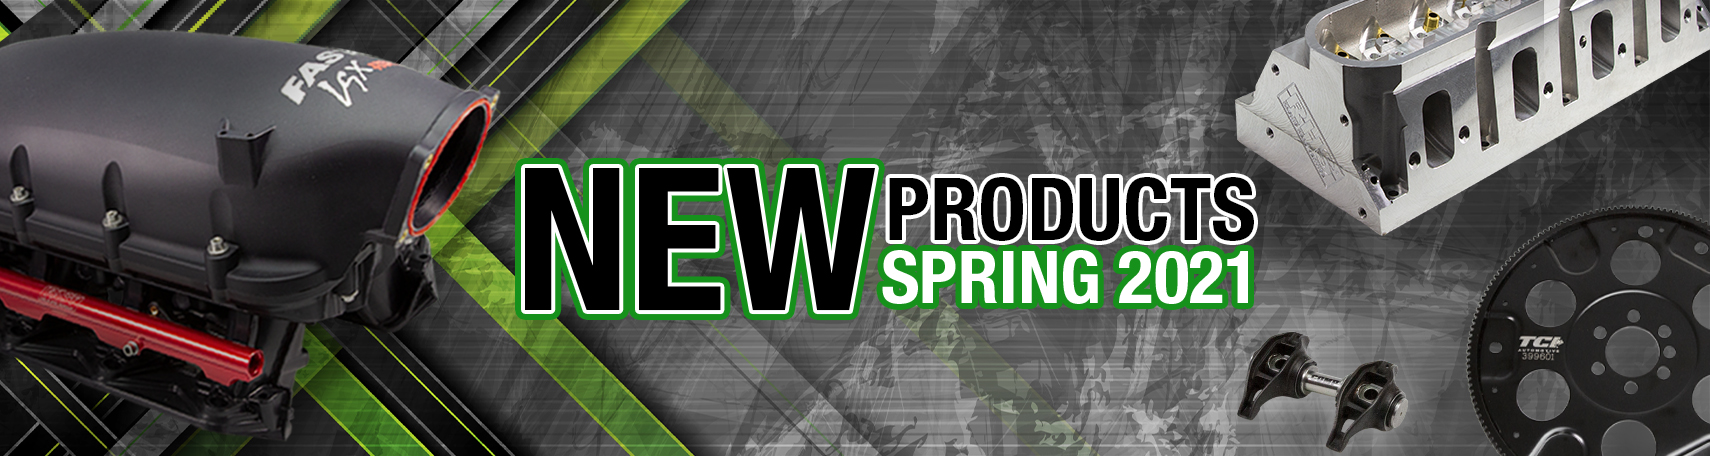 New Products Spring 2021